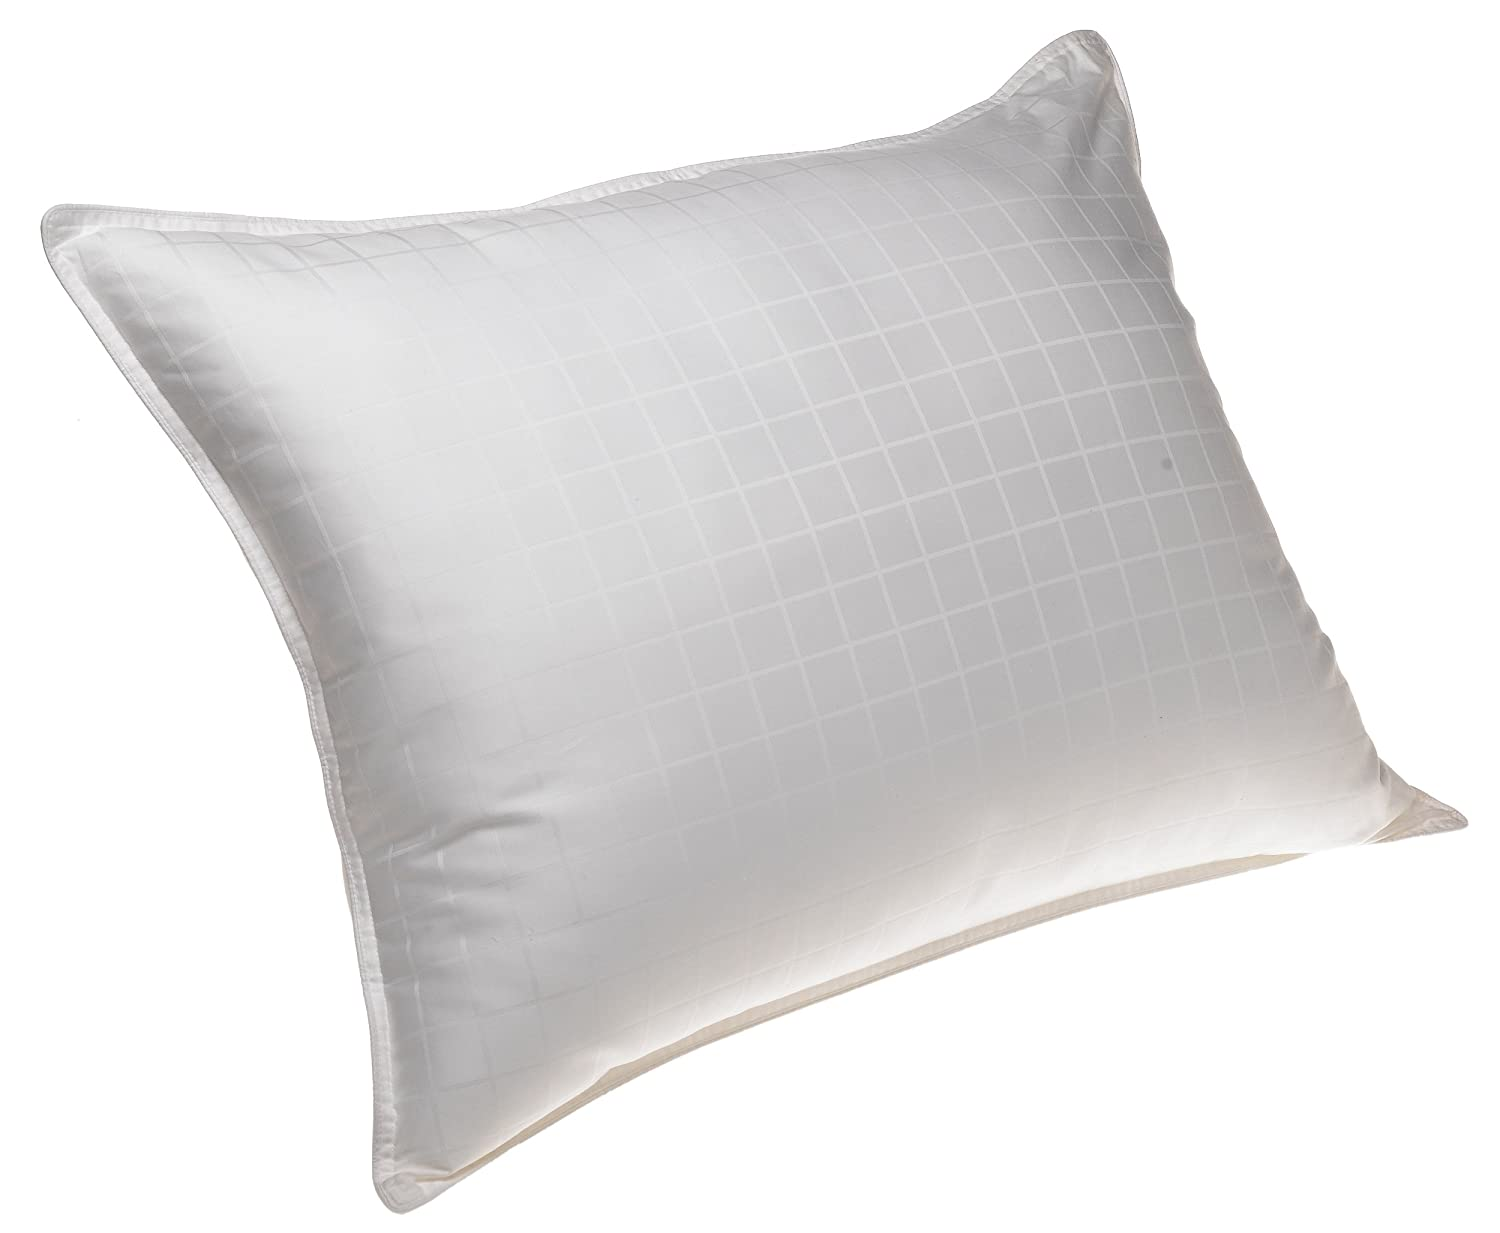 Beyond Down Synthetic Down Standard Bed Pillow, White 031374506607